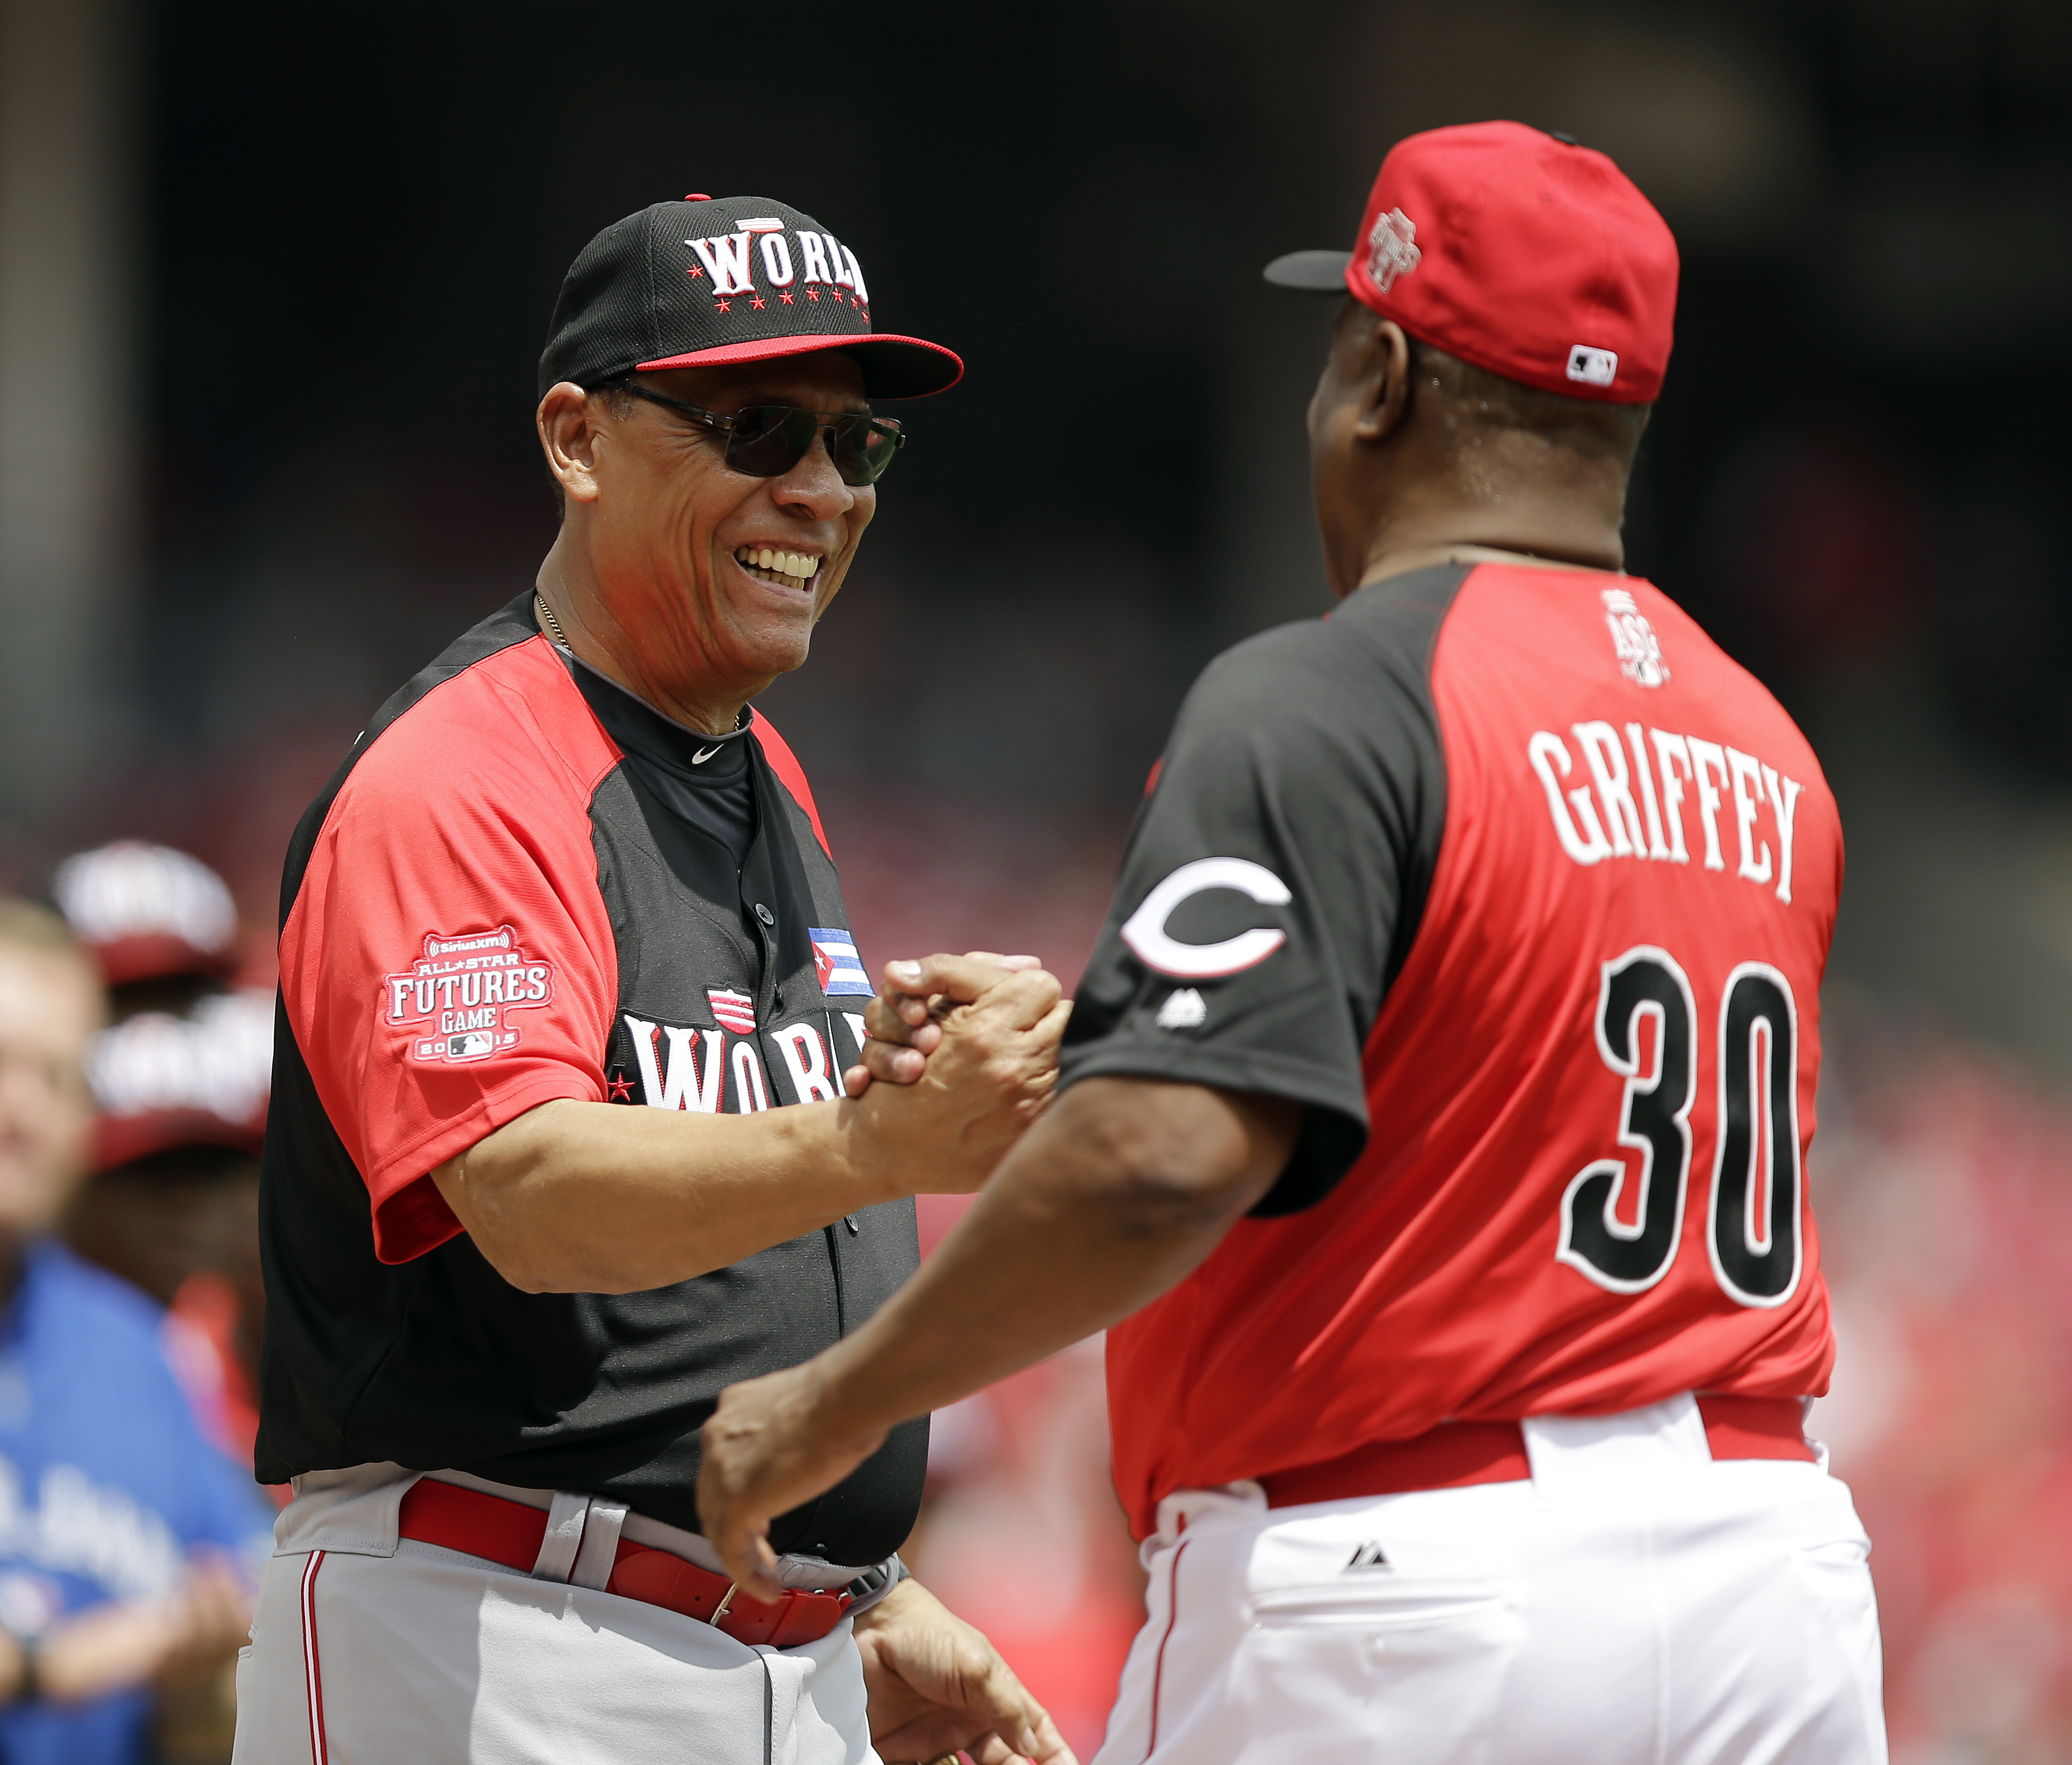 Team World manager Tony Perez, left, greets Team United States manager Ken Griffey Sr. before the All-Star Futures baseball game, Sunday, July 12, 2015, in Cincinnati. (AP Photo/Darron Cummings)